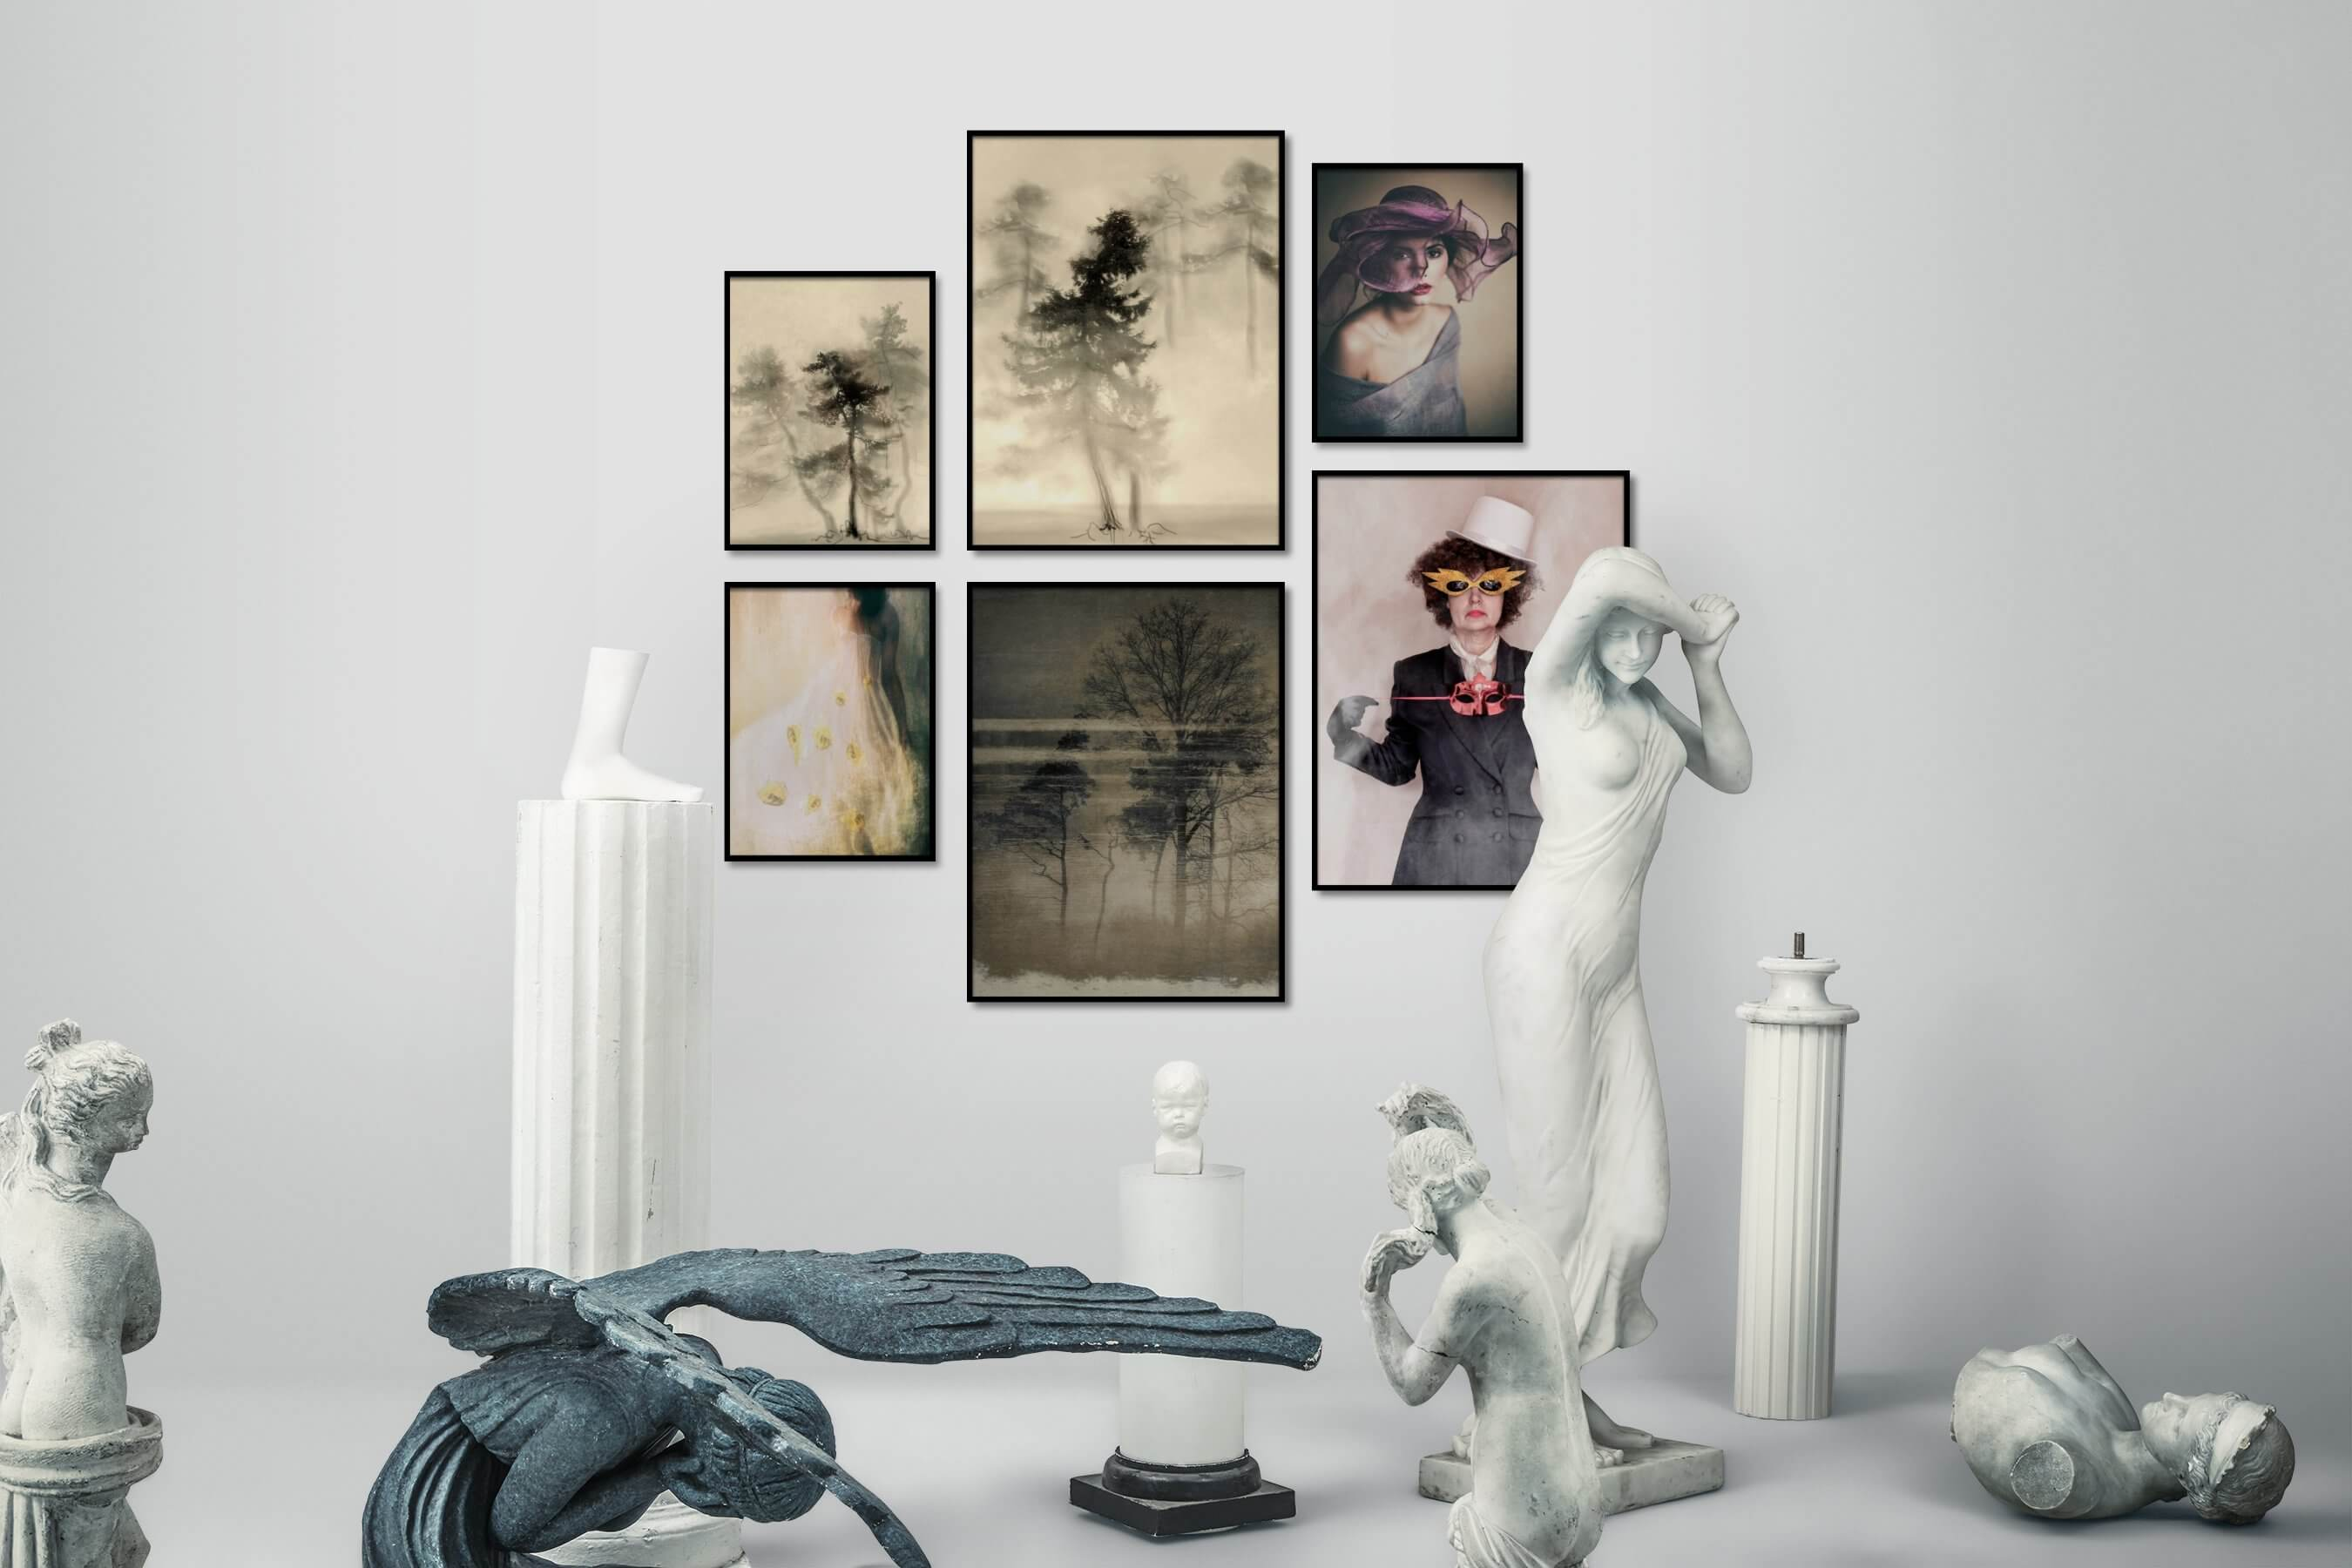 Gallery wall idea with six framed pictures arranged on a wall depicting Nature, Fashion & Beauty, and Vintage